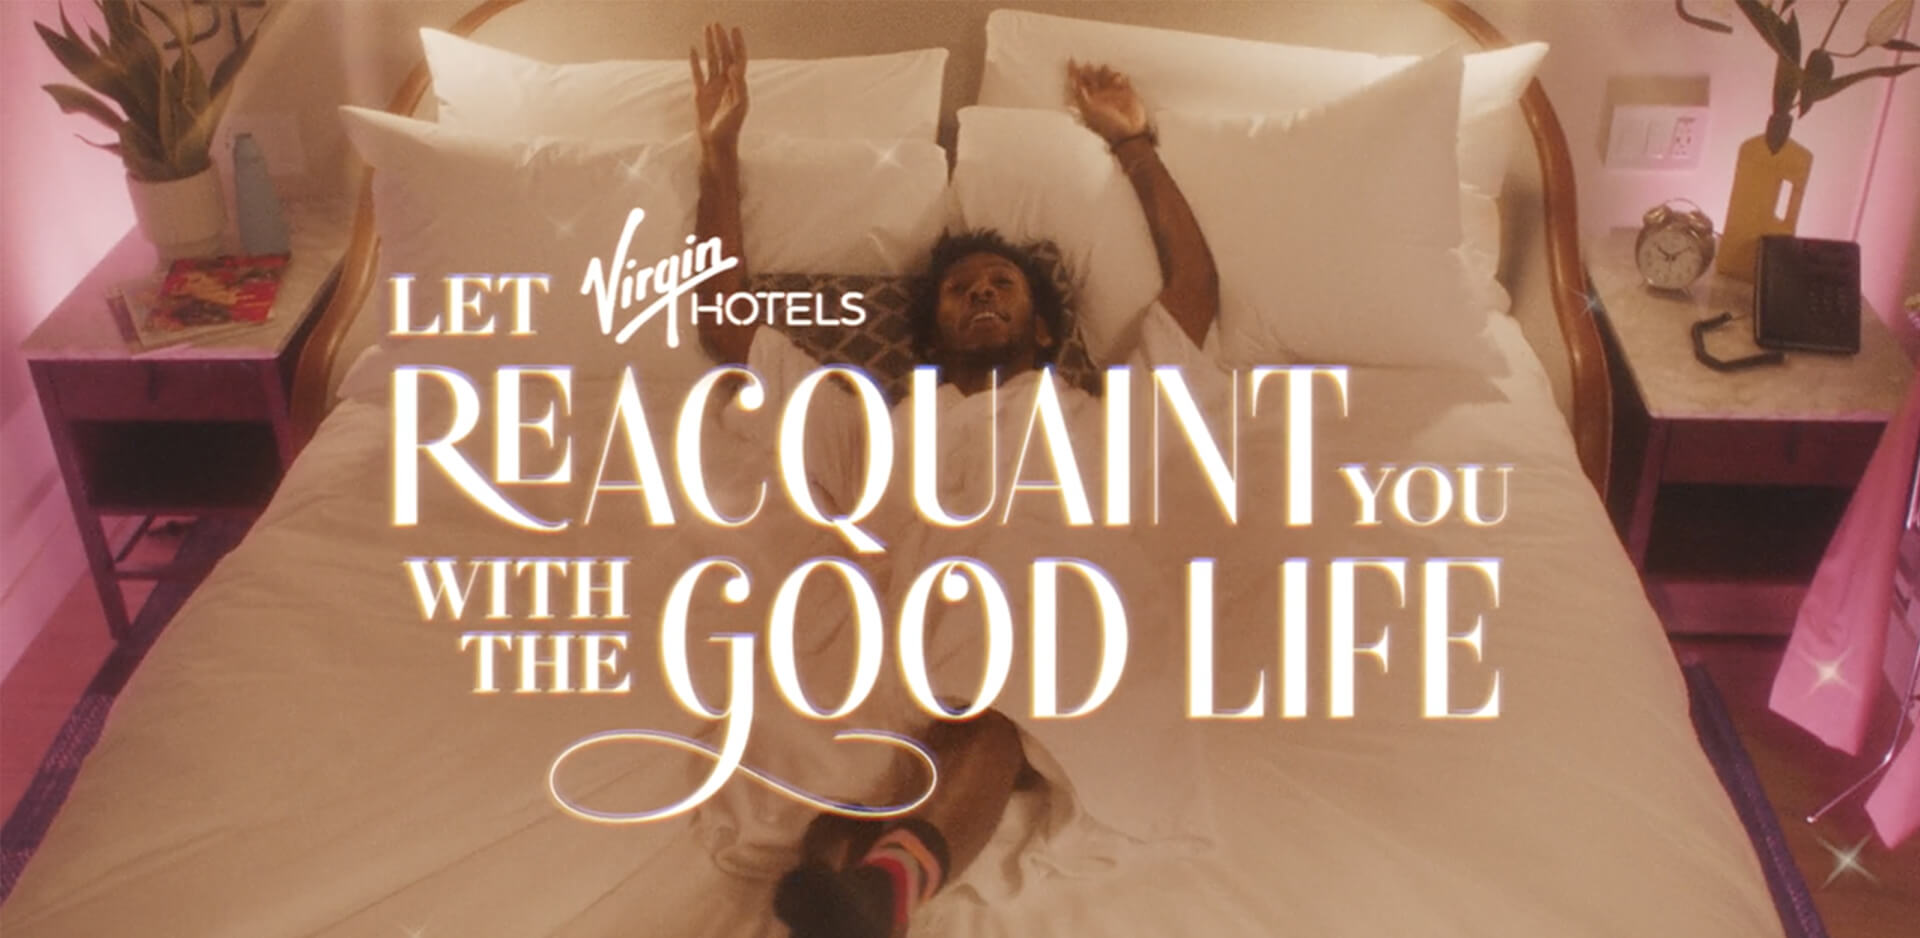 Let Virgin Hotels Reacquaint you with the Good Life